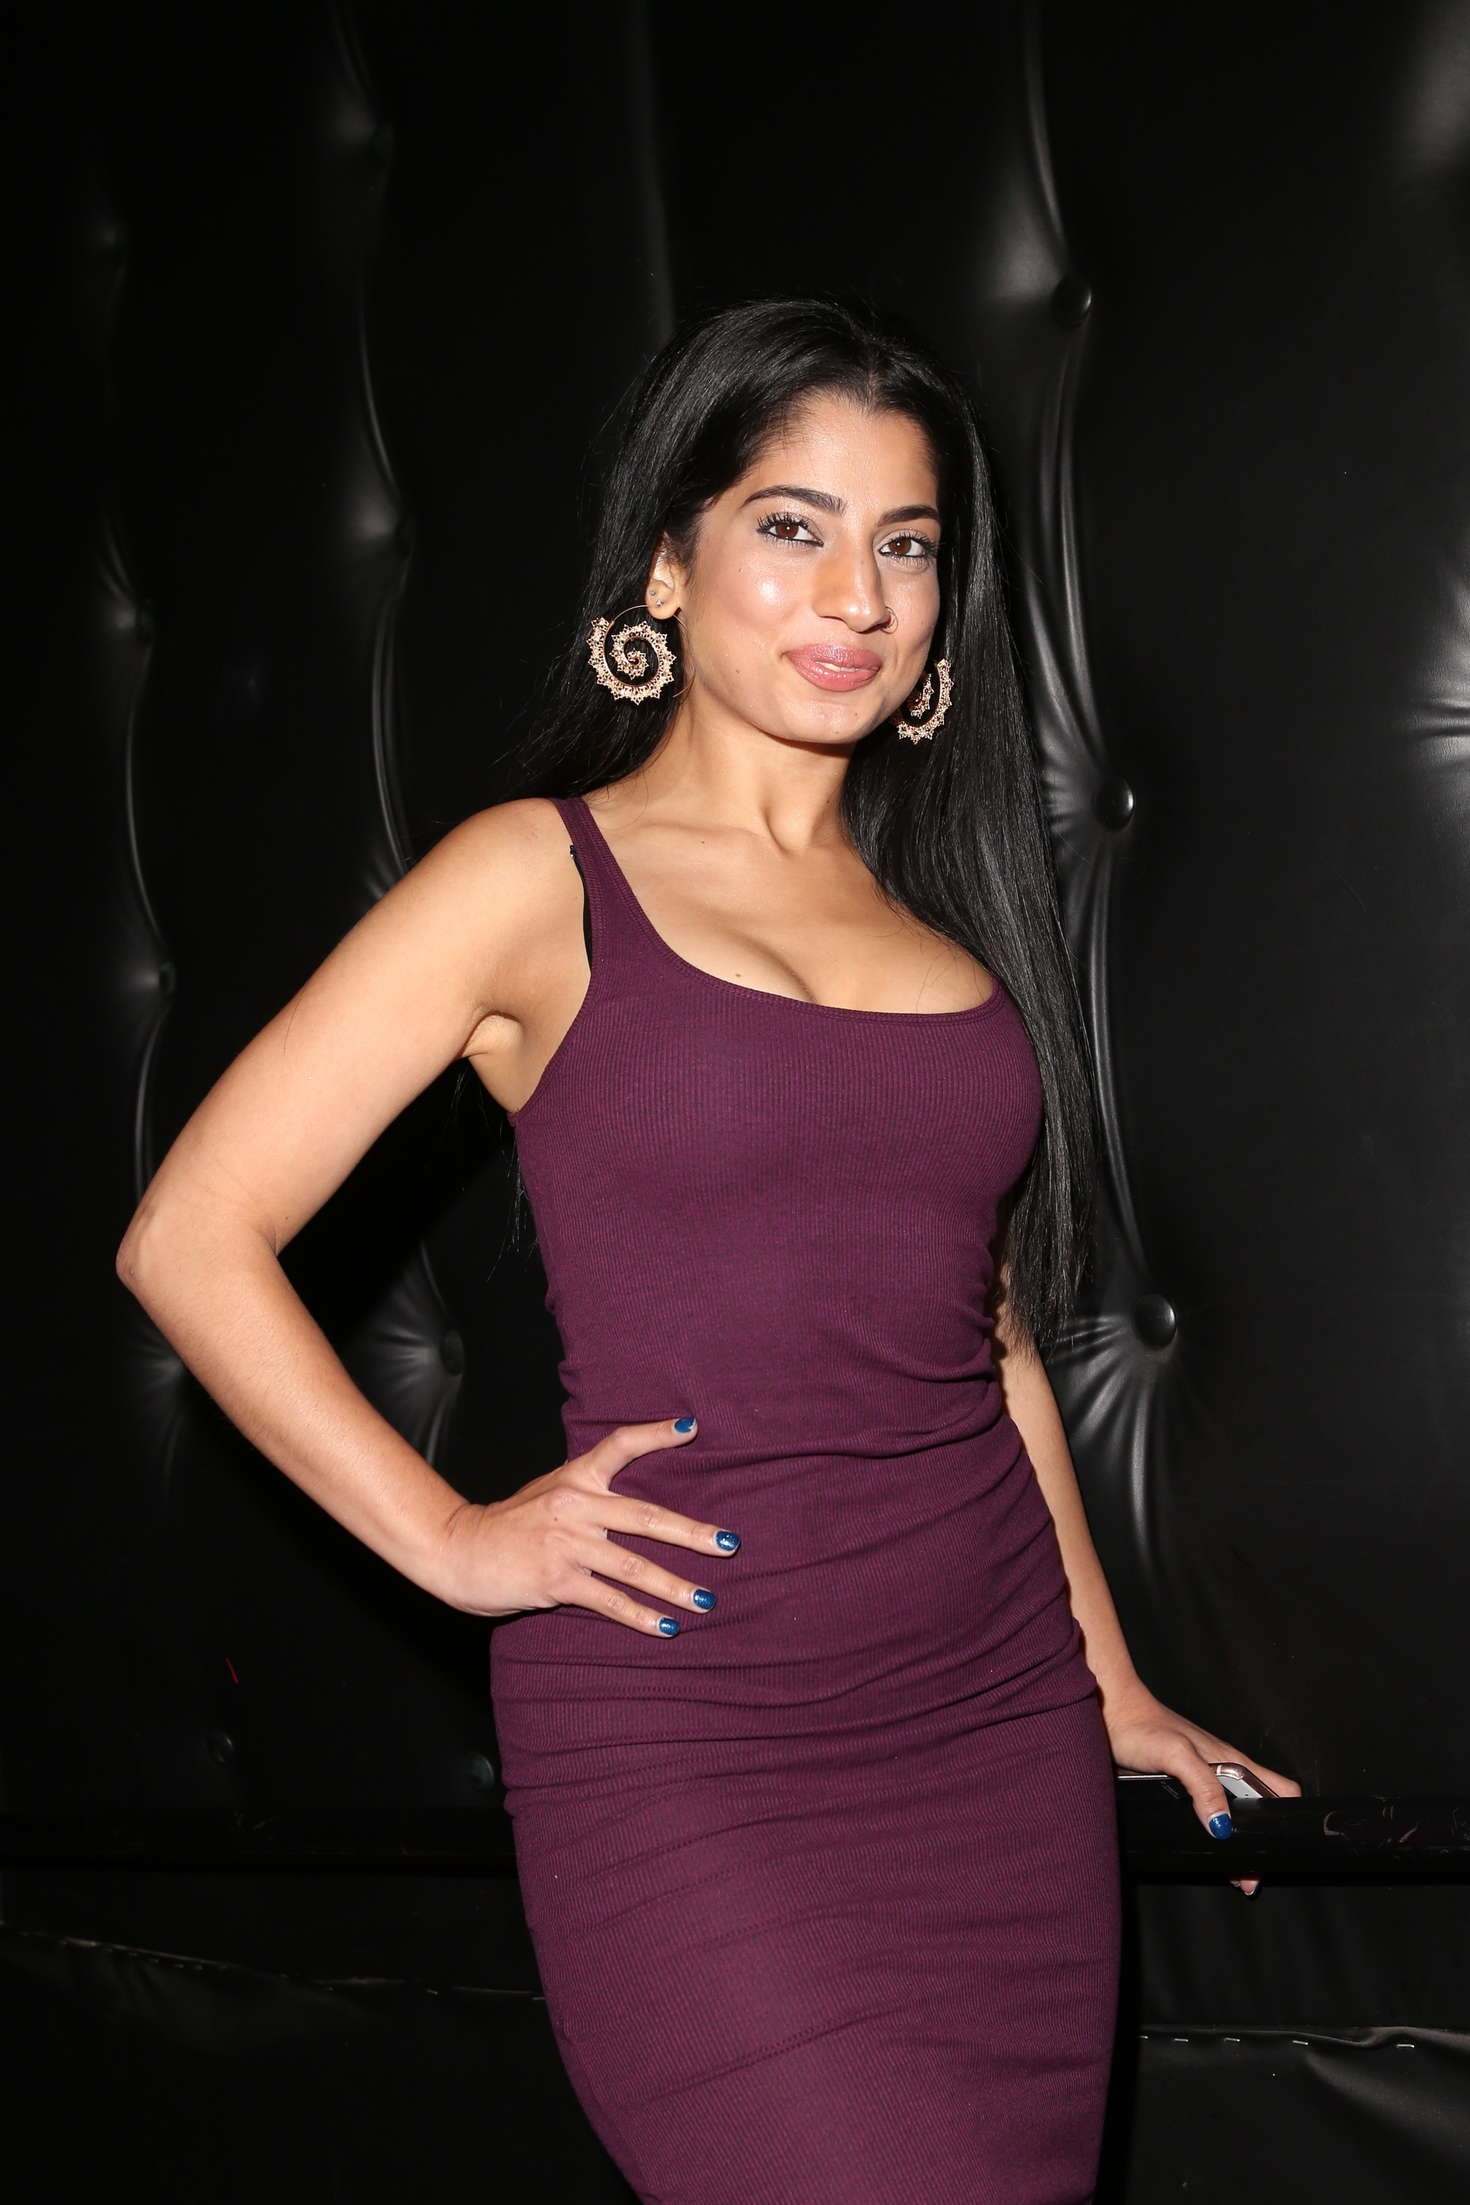 Photos Nadia Ali naked (37 foto and video), Topless, Paparazzi, Feet, panties 2017